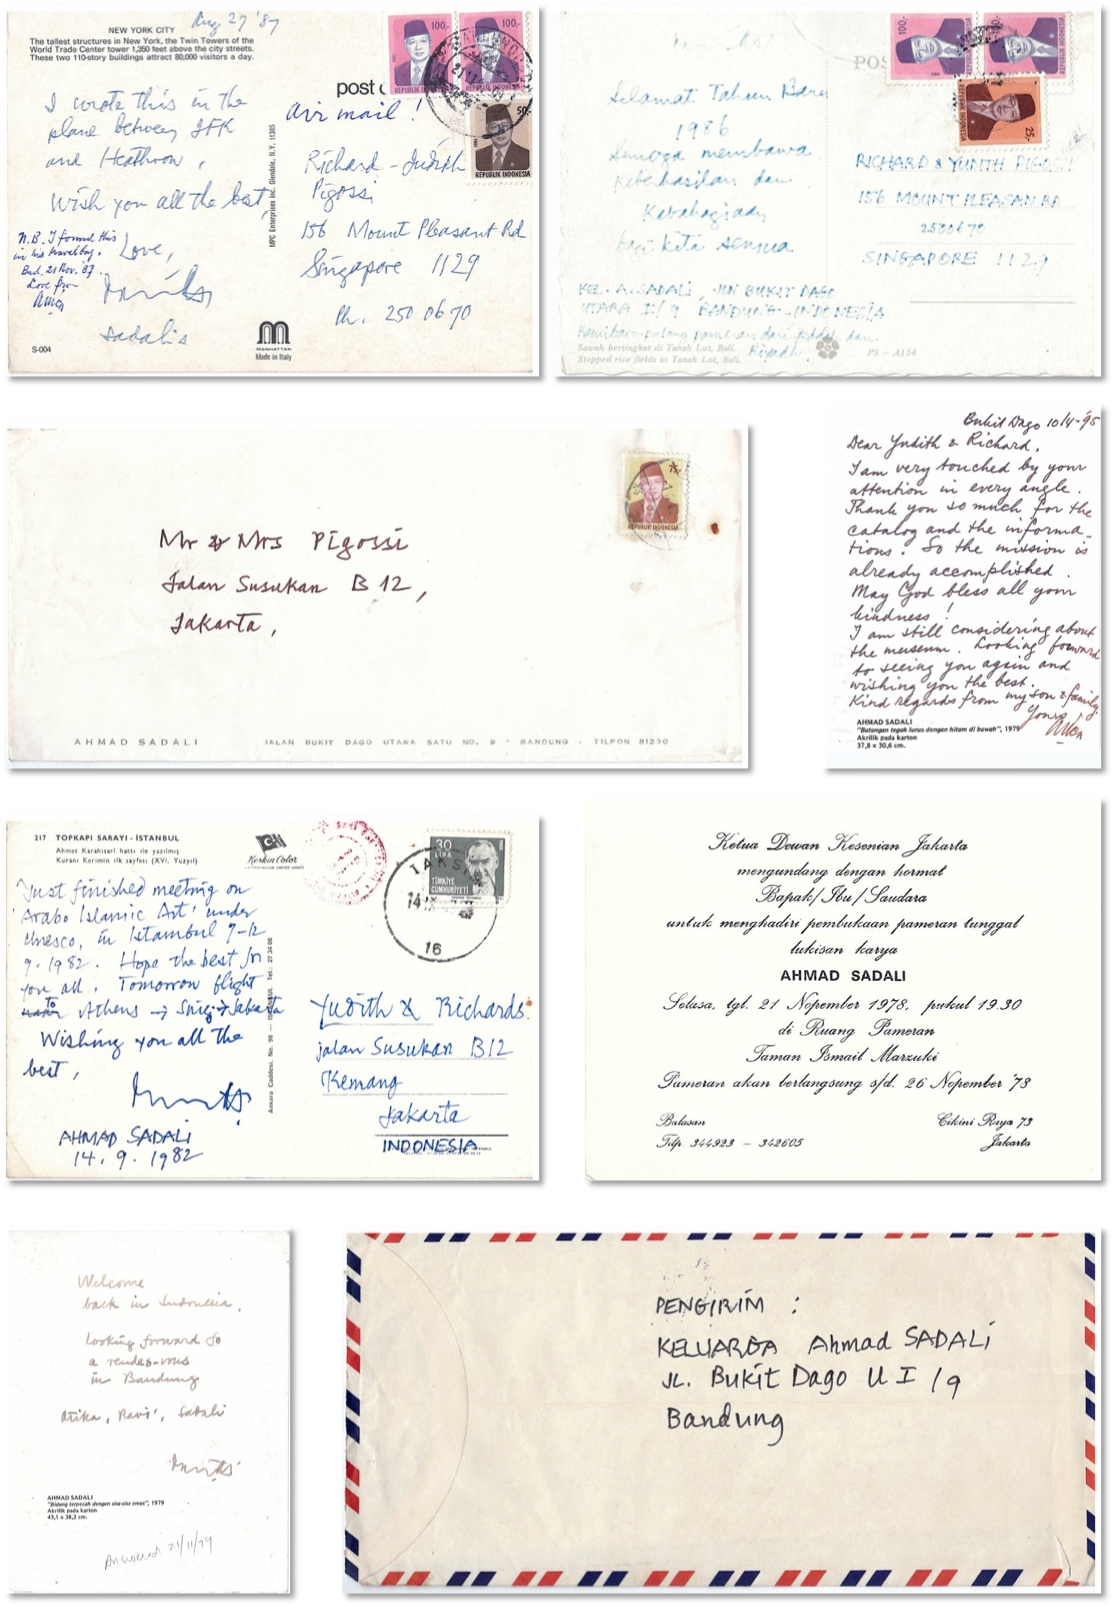 A collection of handwritten cards and letters from the artist Ahmad Sadali to Richard and Judith.